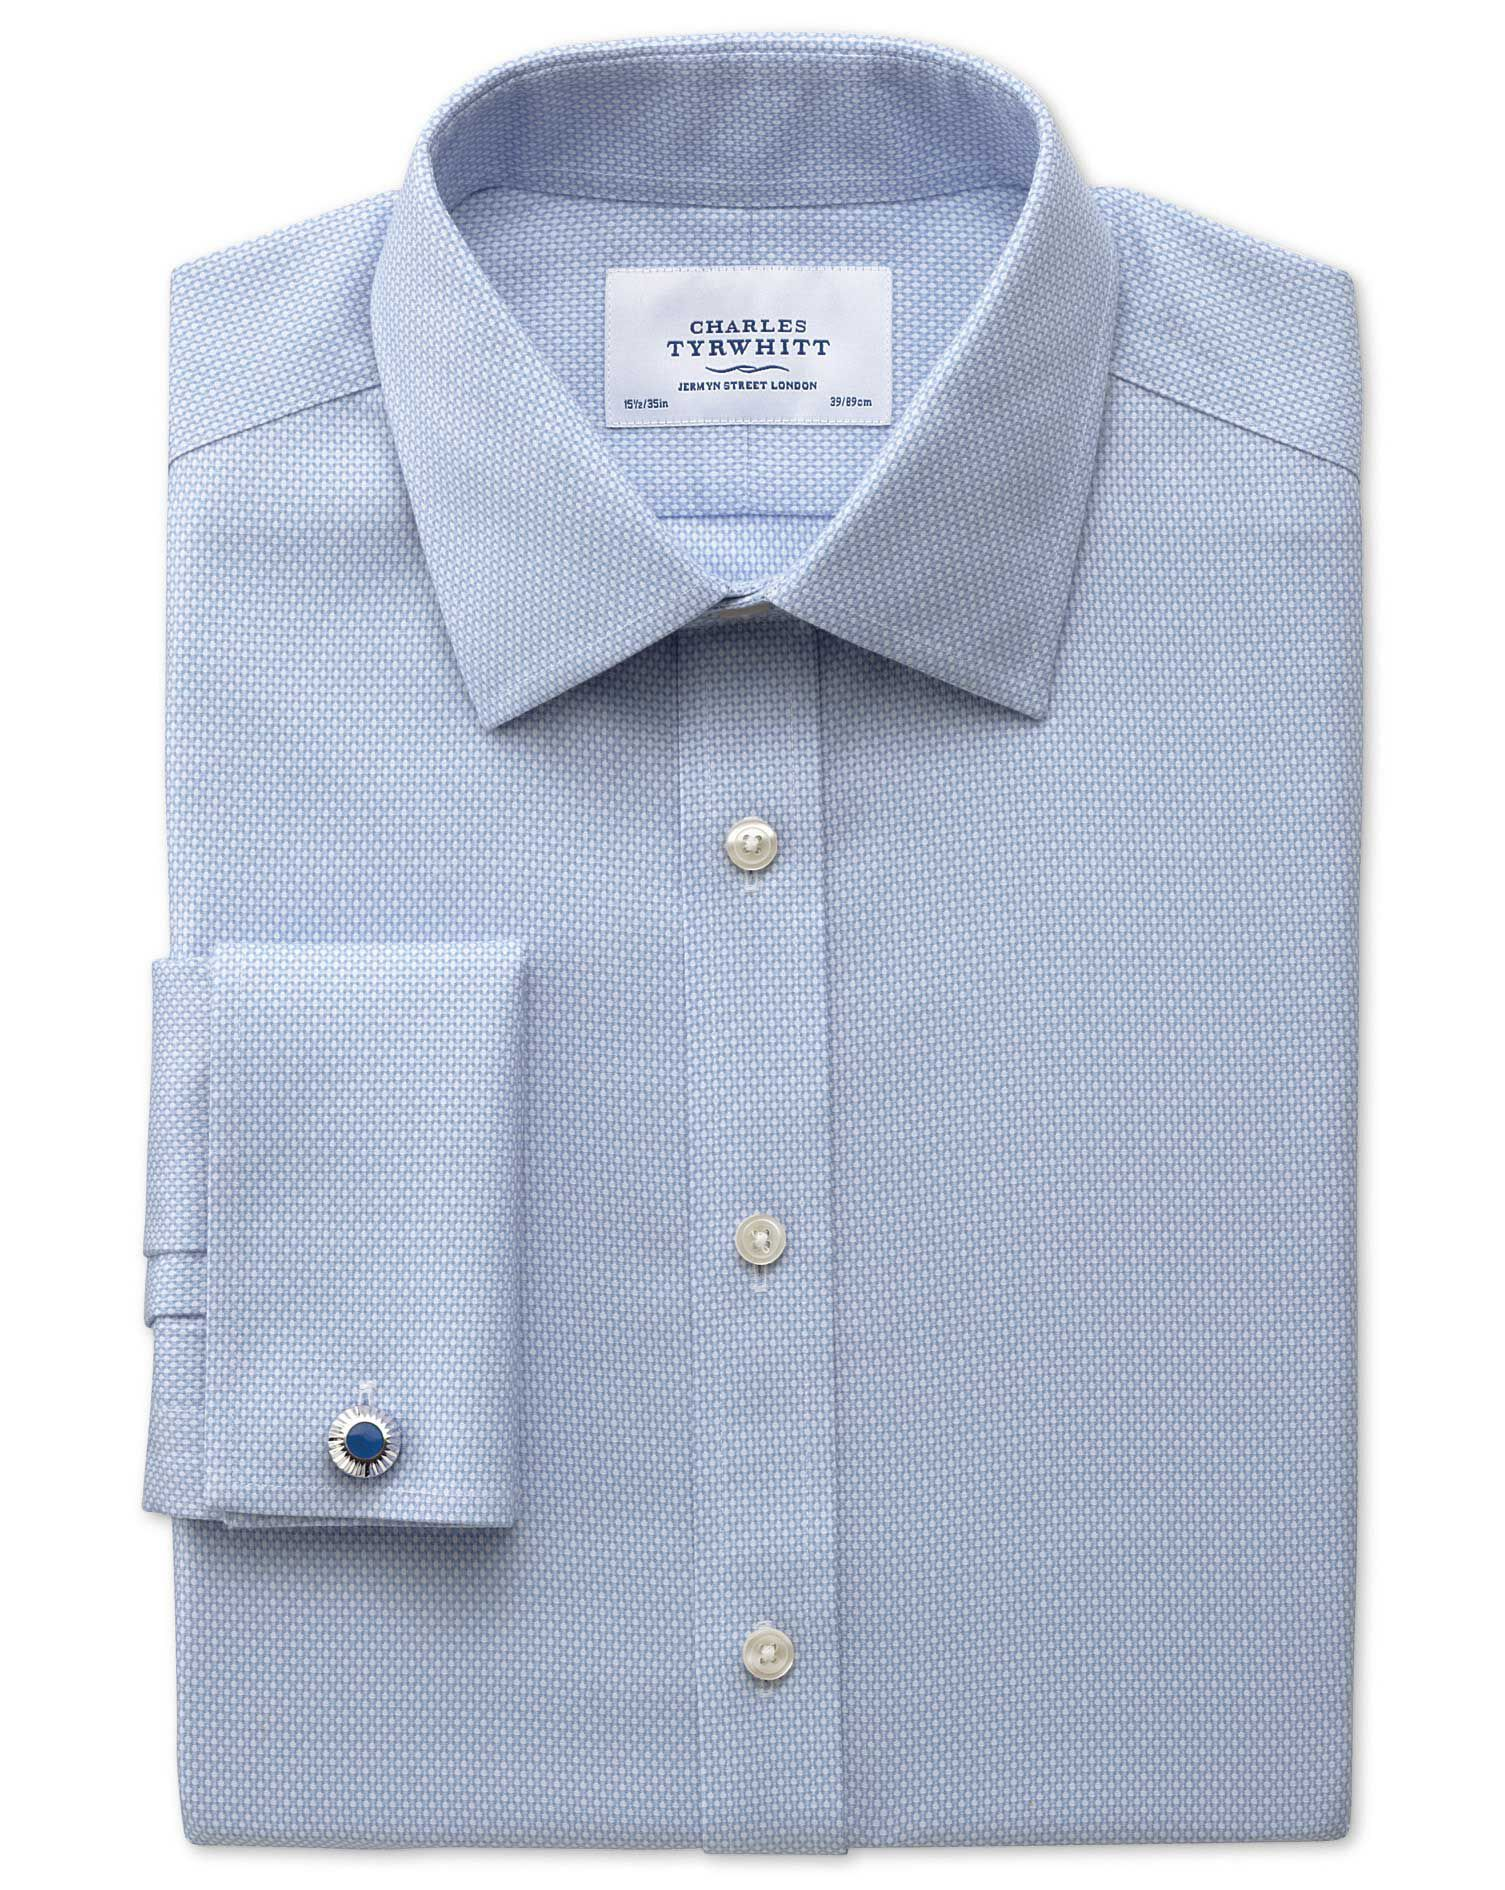 Extra Slim Fit Non-Iron Honeycomb Sky Blue Cotton Formal Shirt Double Cuff Size 16.5/36 by Charles T